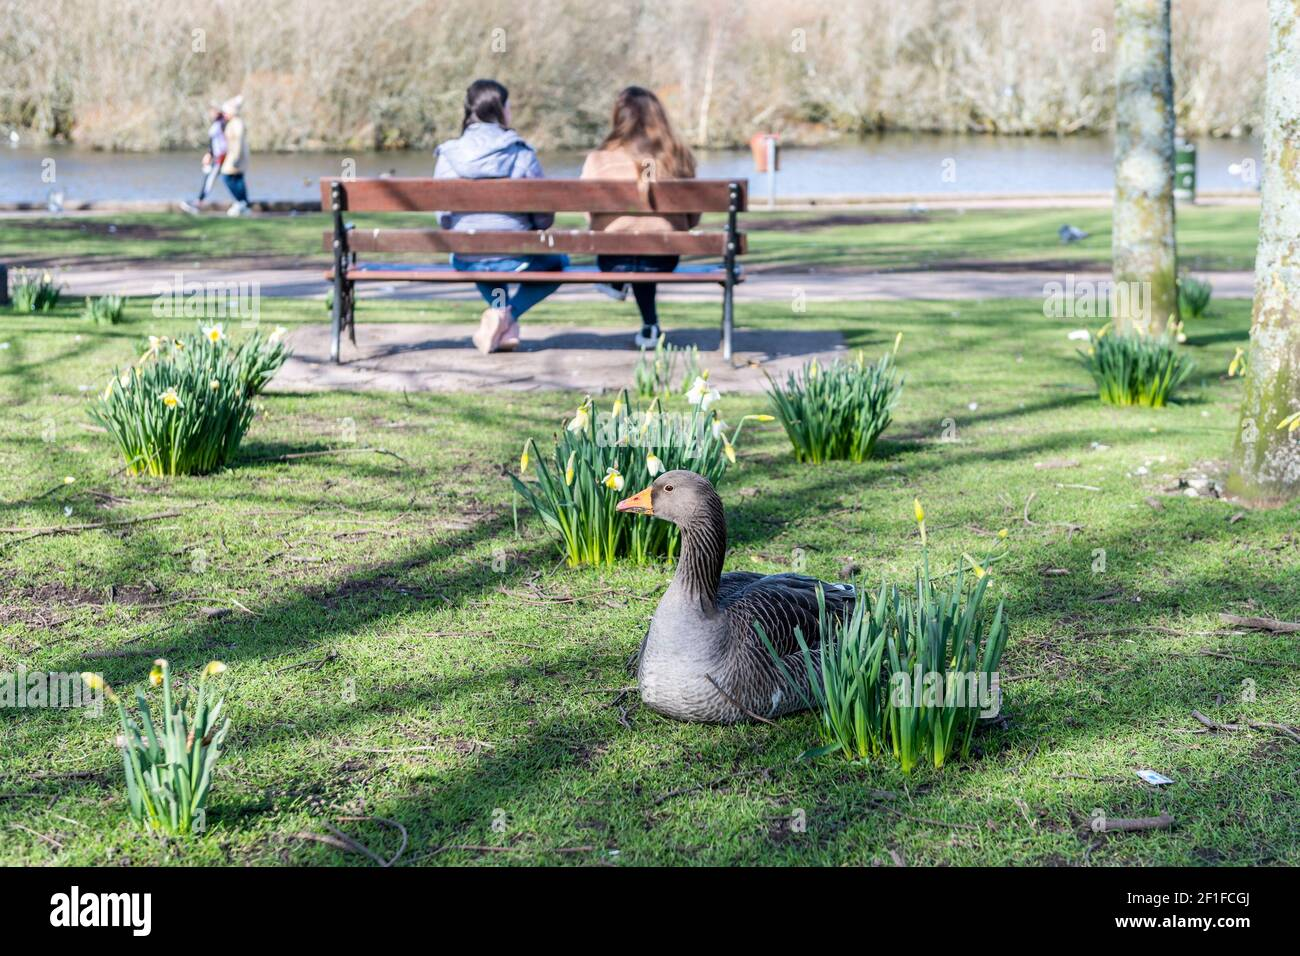 cork-ireland-8th-mar-2021-people-descended-on-the-lough-in-cork-today-on-what-was-a-cold-but-sunny-day-most-people-observed-social-distancing-credit-ag-newsalamy-live-news-2F1FCGJ.jpg